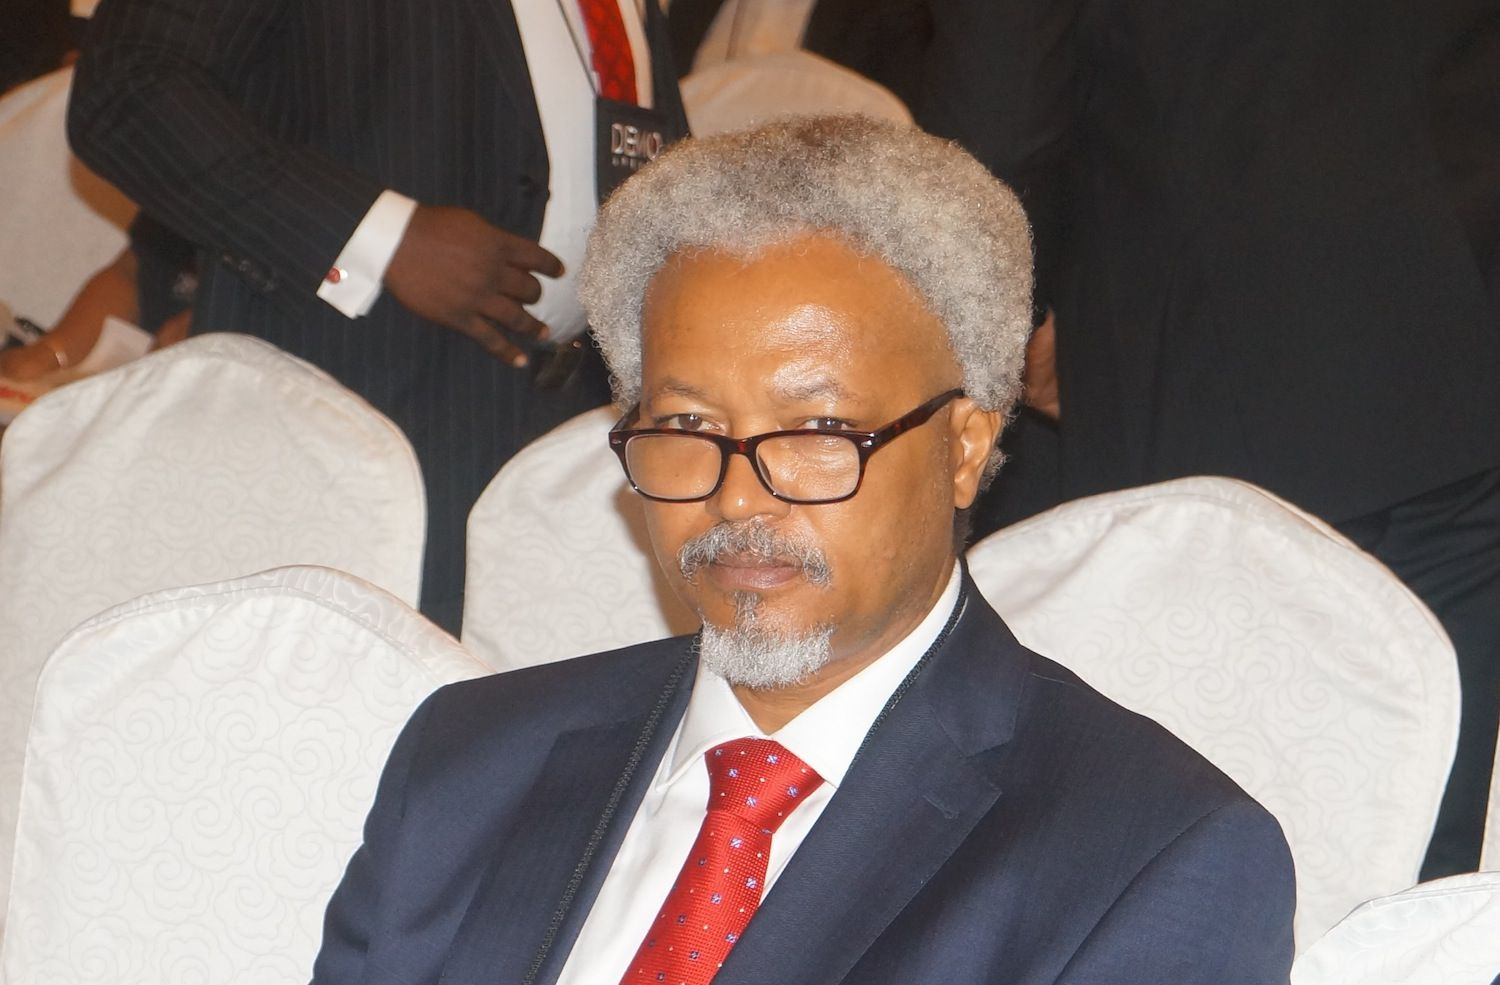 e-Nigeria conference holds next month, NITDA says